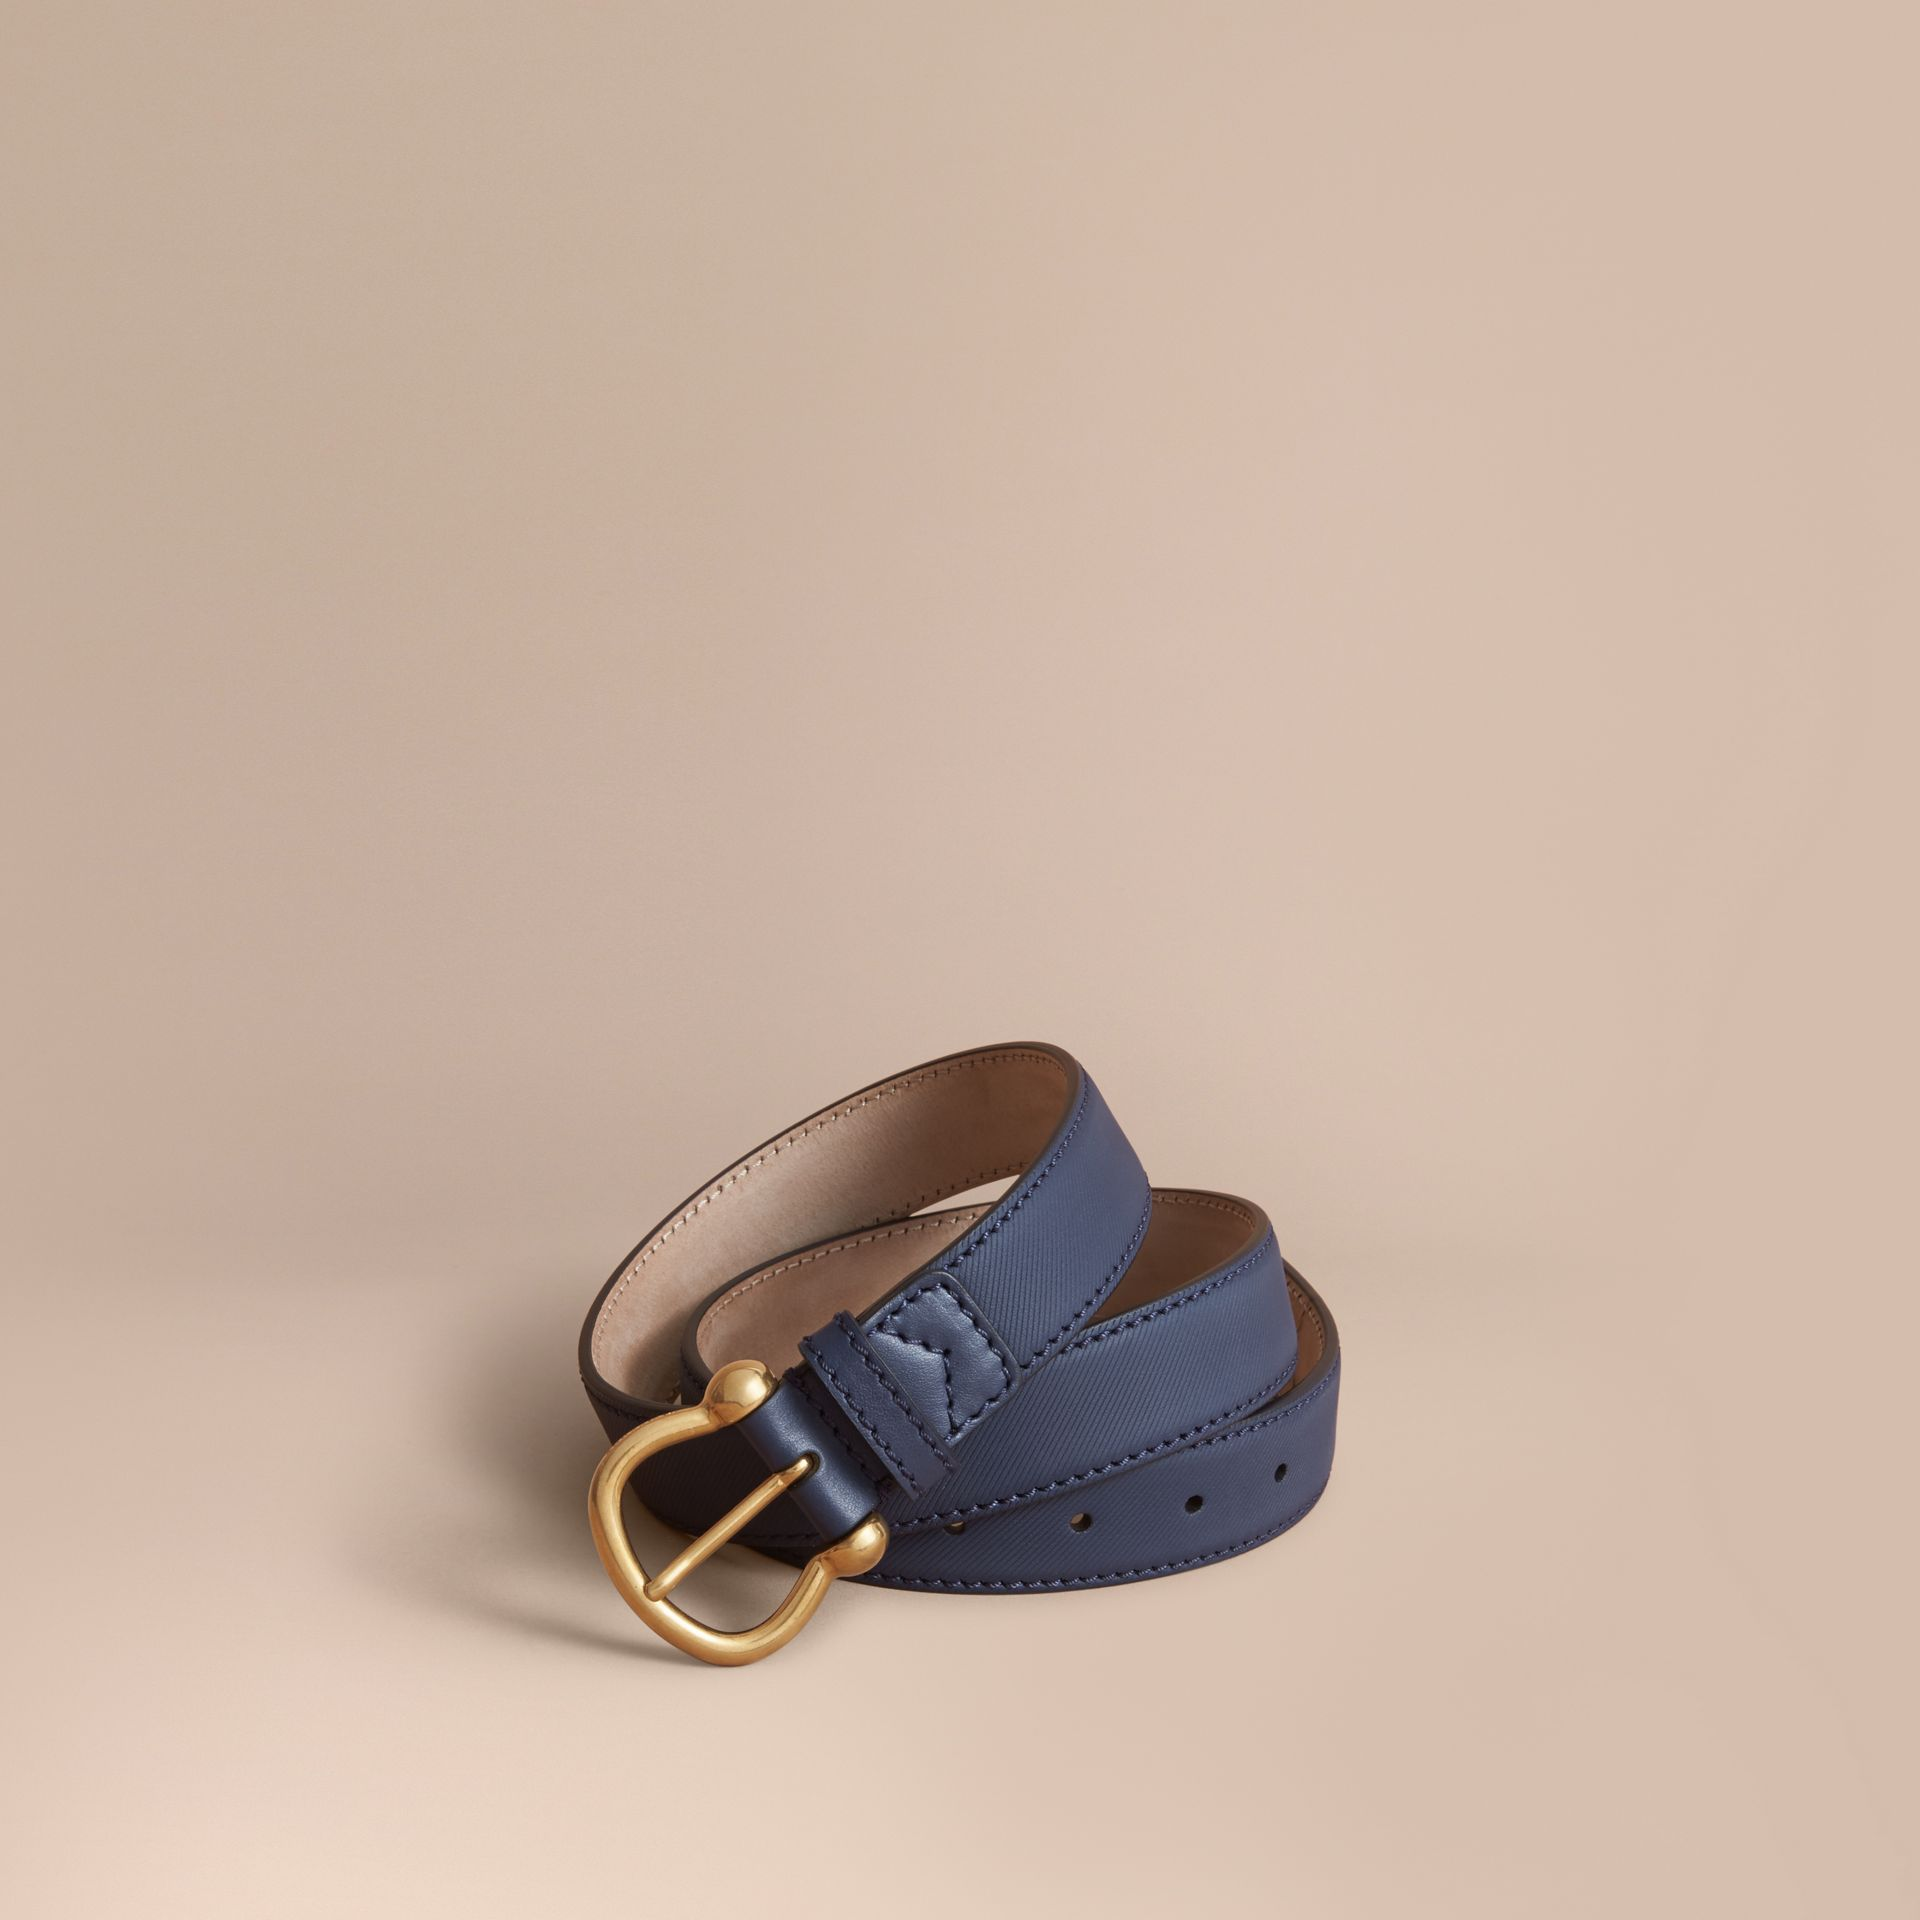 Trench Leather Belt in Ink Blue - Women | Burberry Hong Kong - gallery image 1